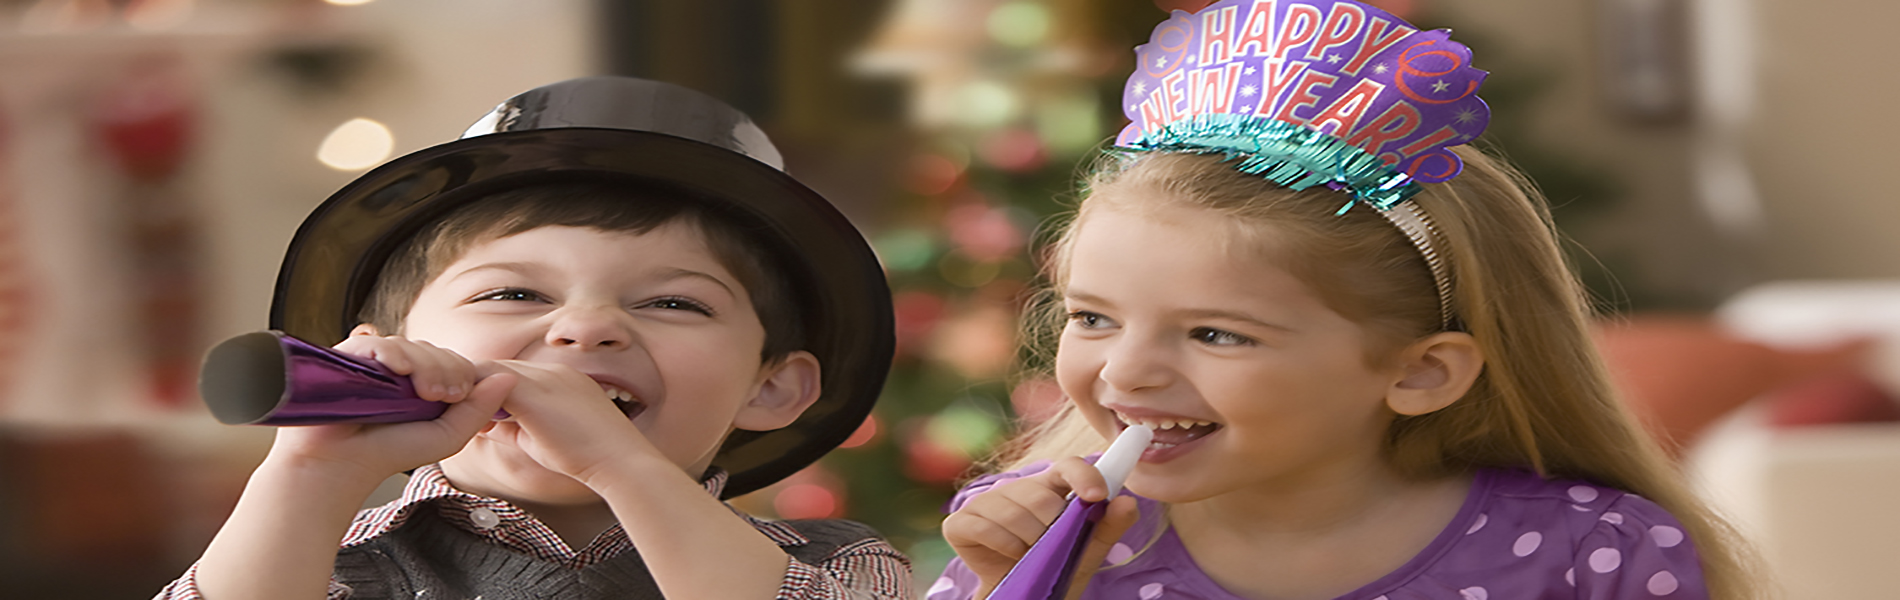 kids-celebrating-new-year